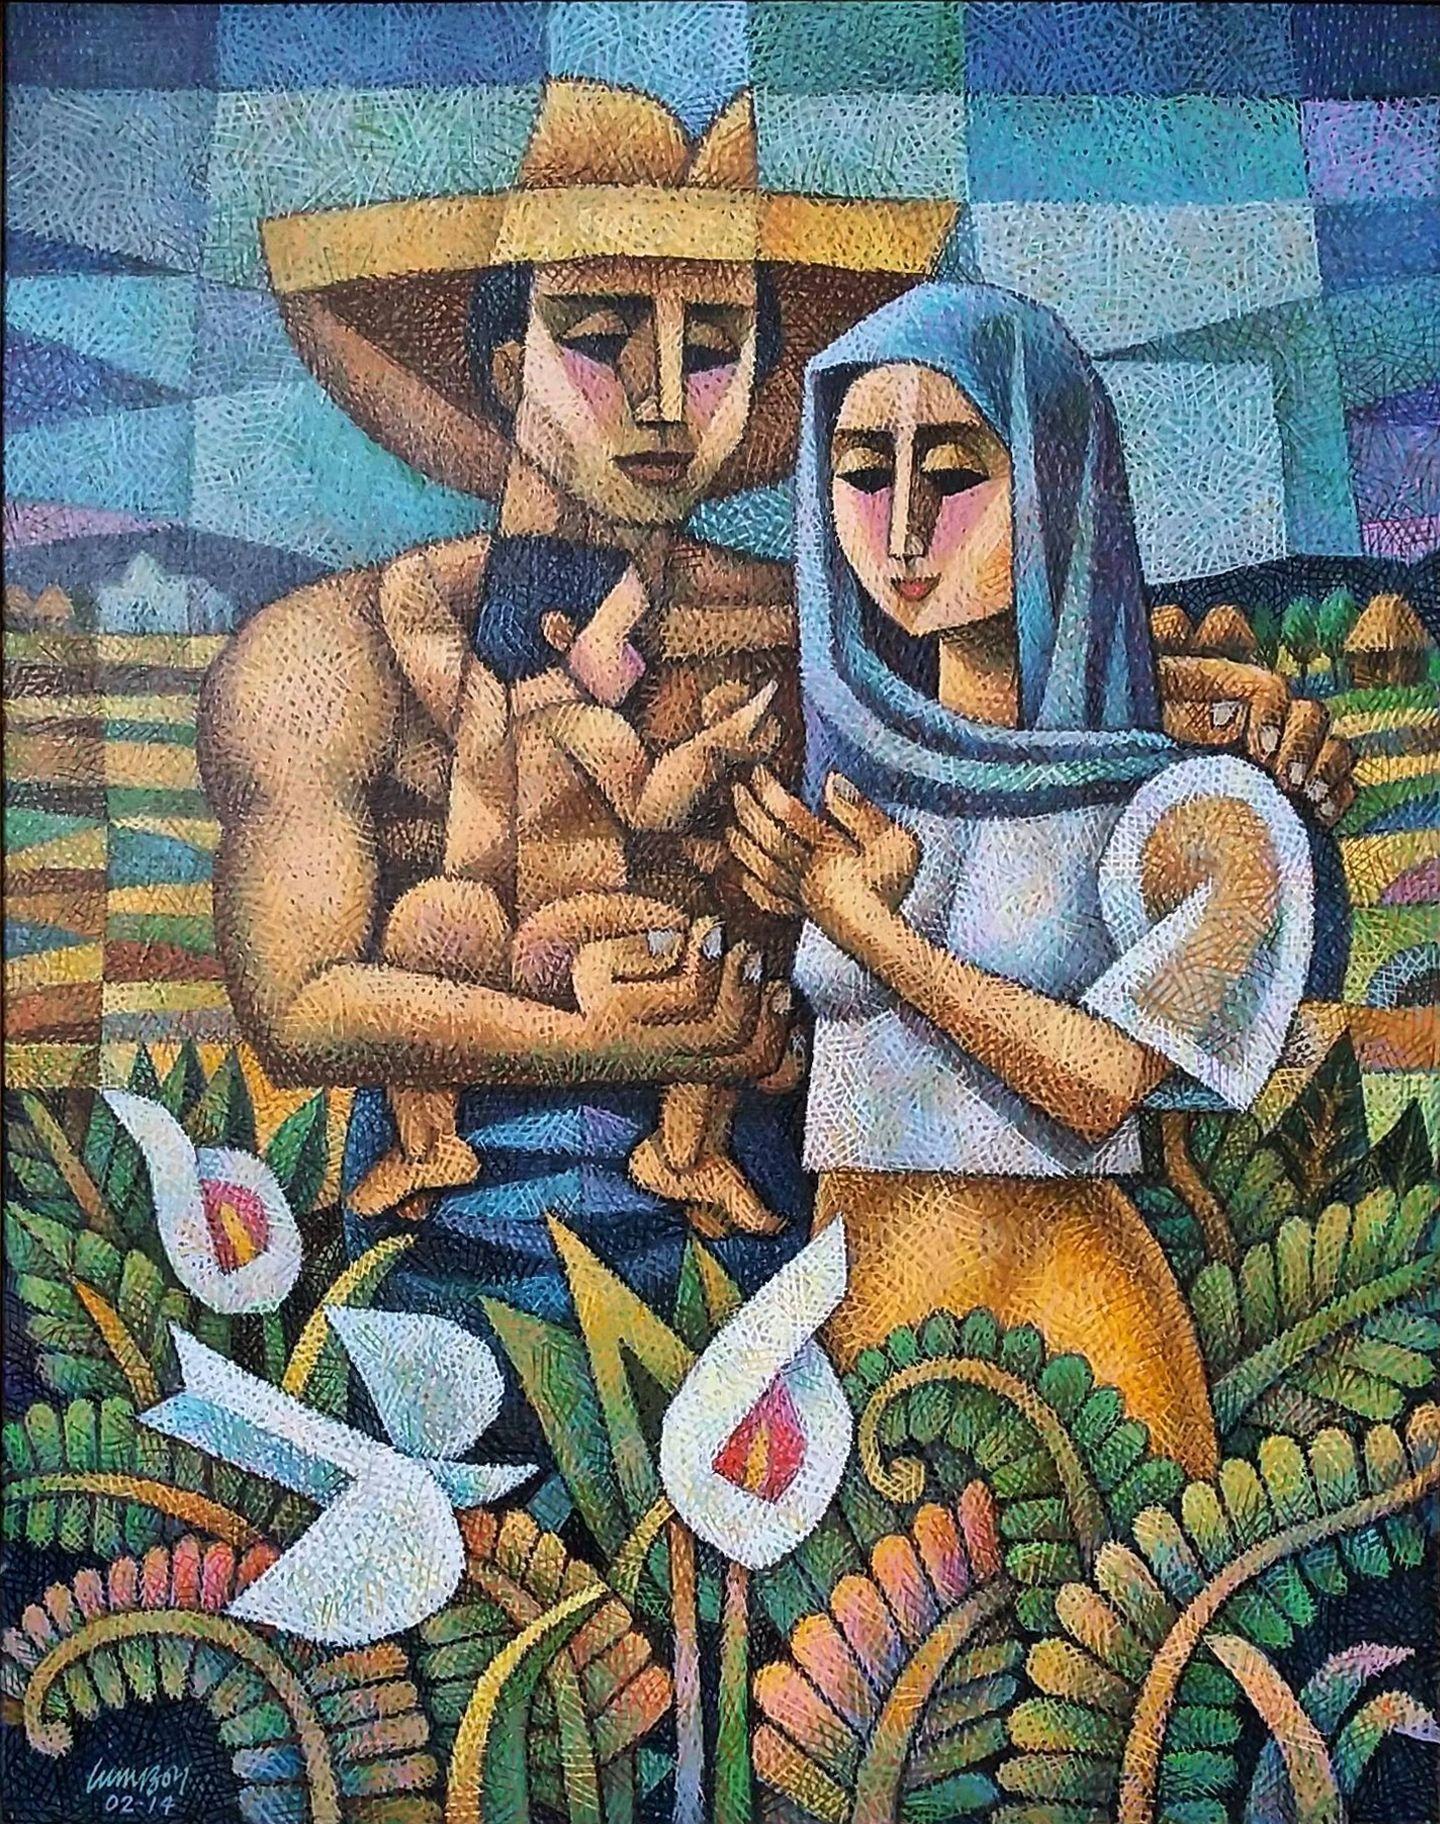 Family By Ninoy Lumboy A Filipino Artist Https Www Pinterest Com Crosshatchism Crosshatchism My Art Art Filipino Art Philippine Art Culture Art